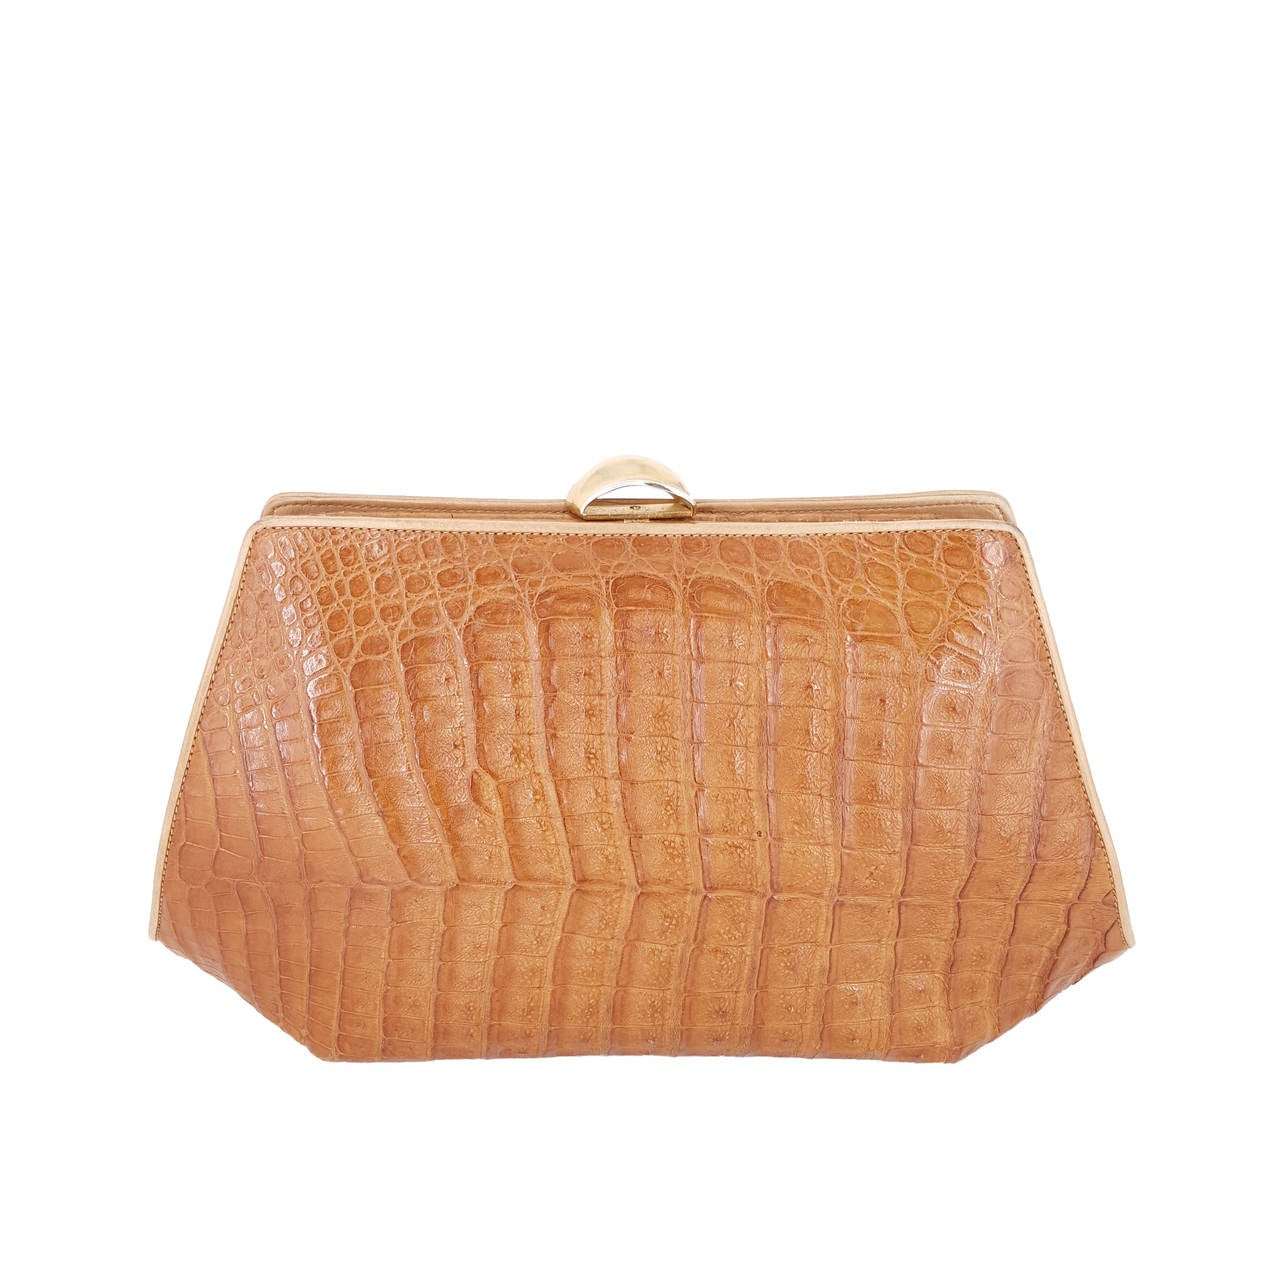 DKNY Rare Vintage Donna Karan Of New York Large Caiman Crocodile Clutch CdvA2piS